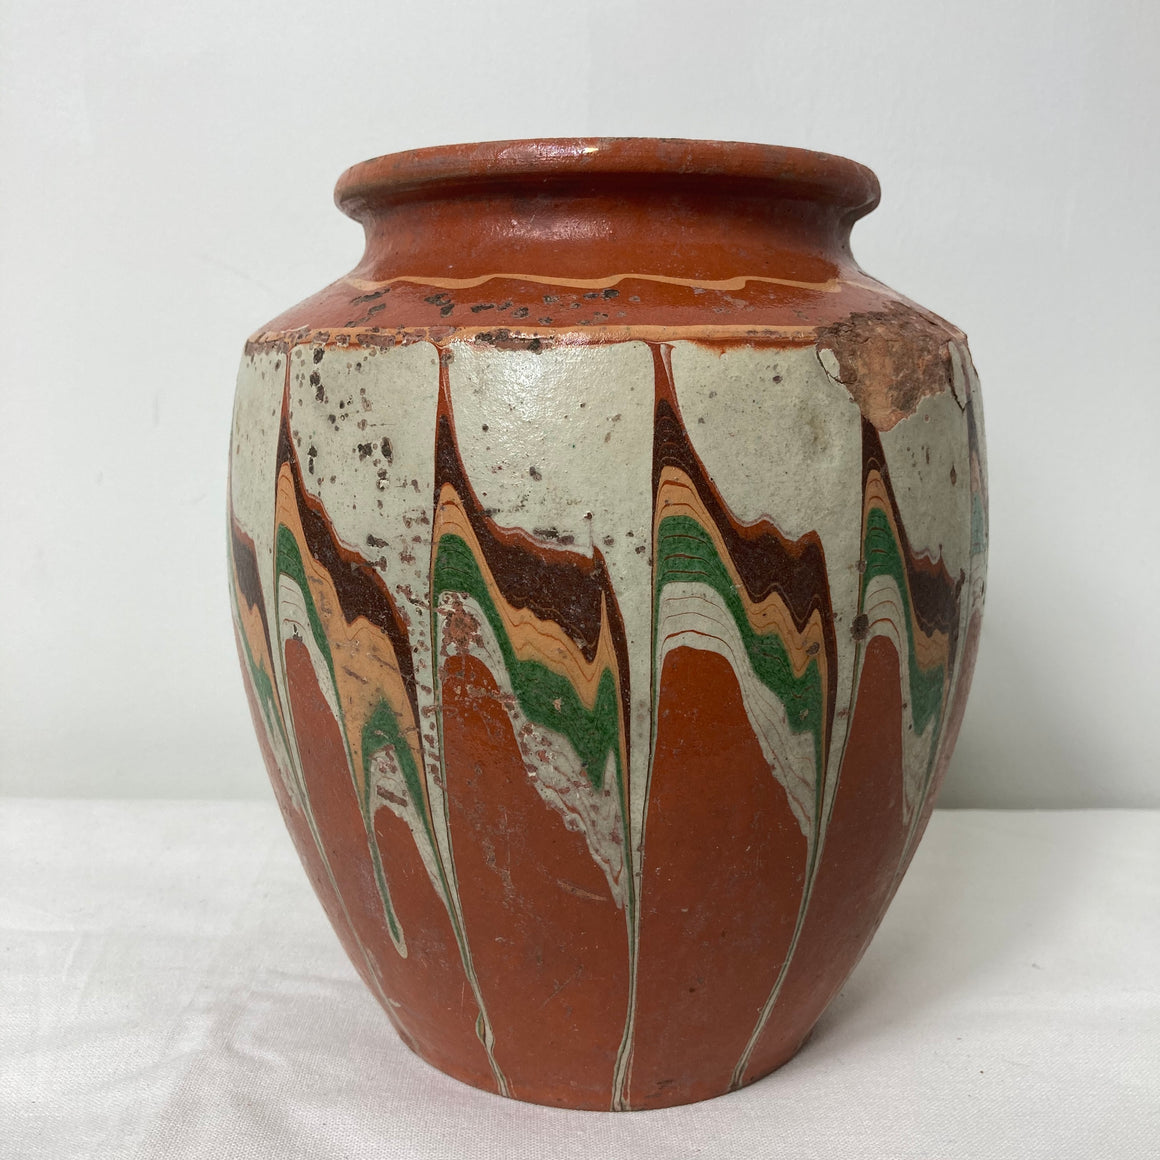 Rustic vase with chevron design